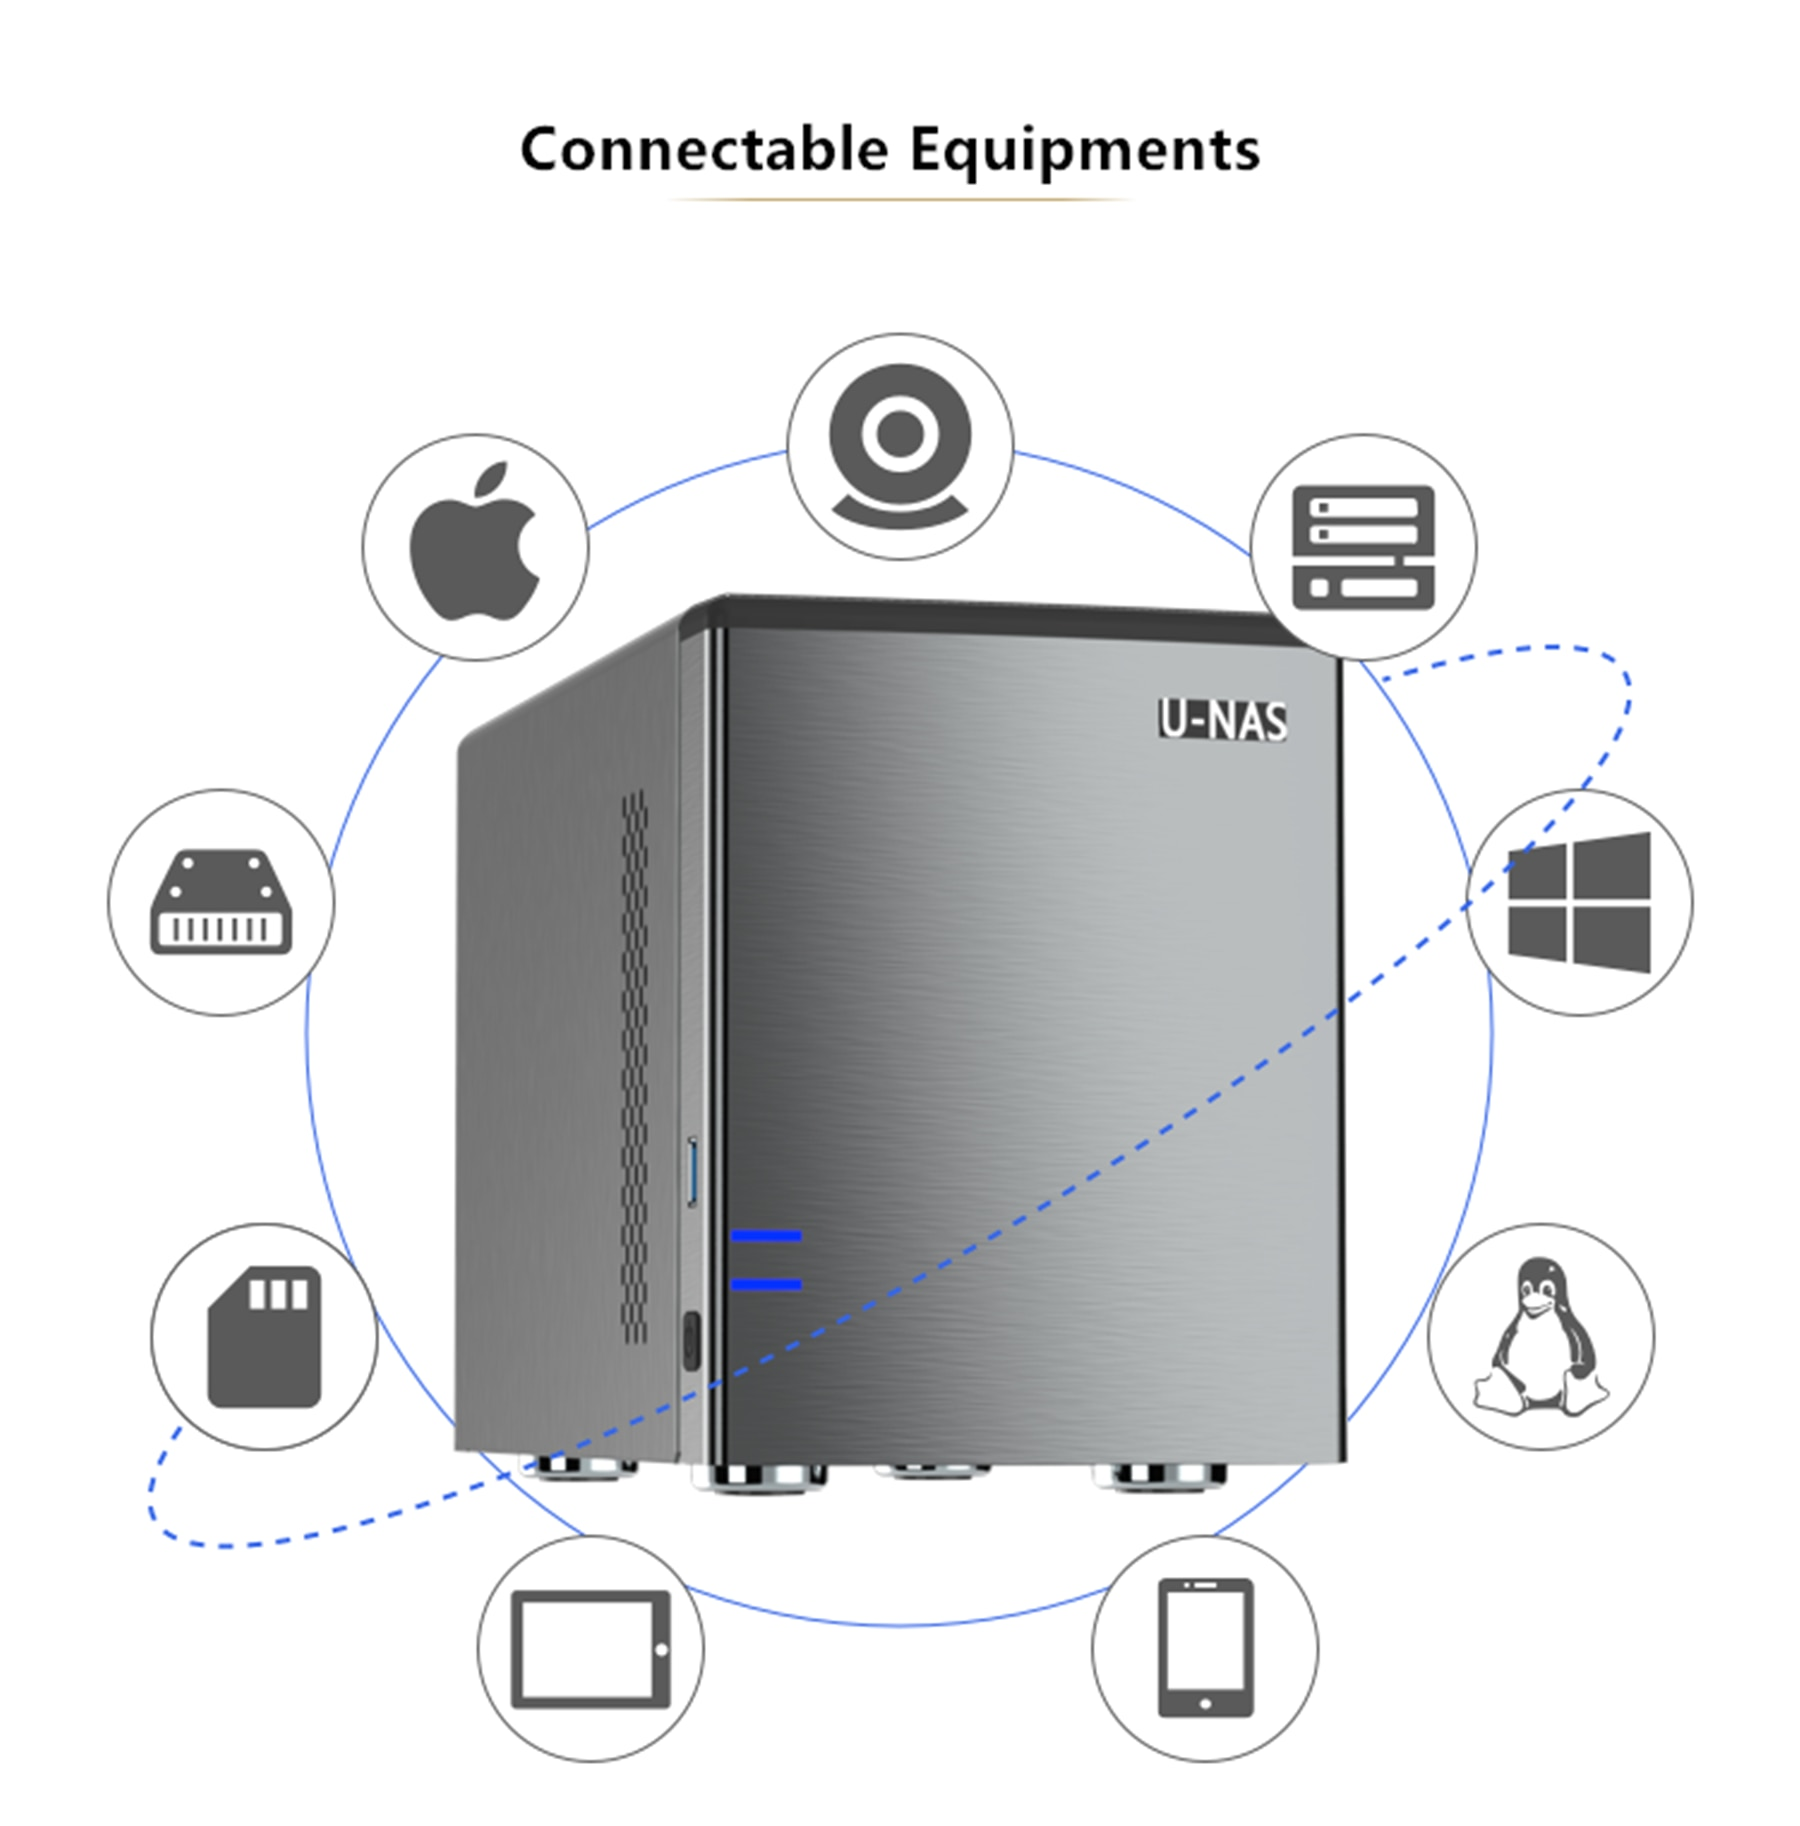 New NAS Server NS-402 4-Bay NFS Network Cloud Storage Disk Station RAID USB3.0 2.5GbE Up To 72 TB Home Personal SOHO